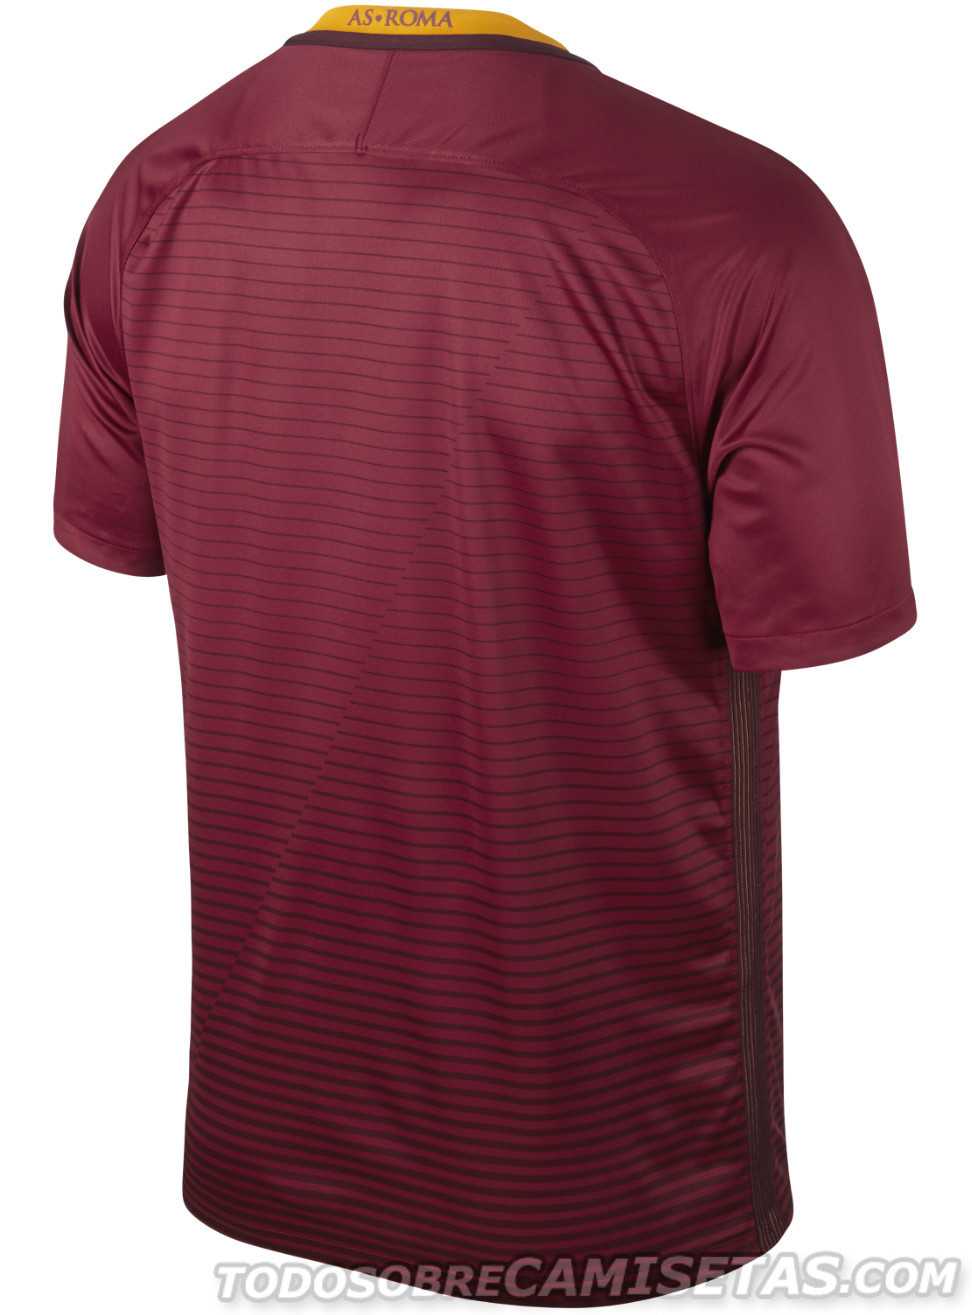 AS-Roma-2016-17-NIKE-new-home-kit-6.jpg